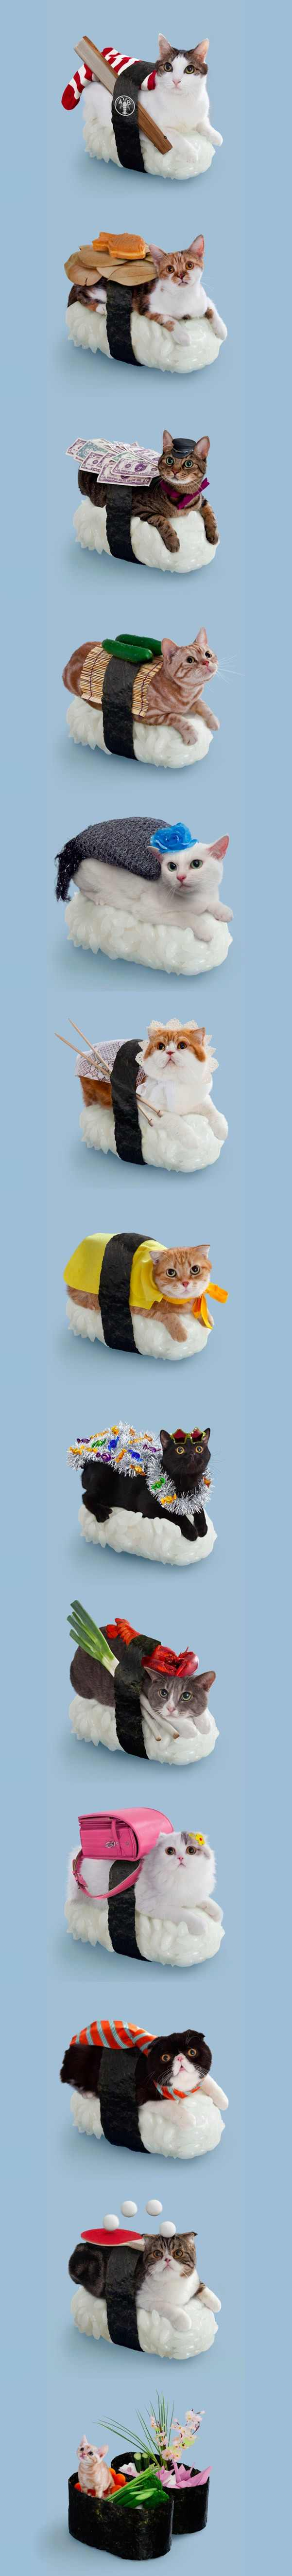 Sushi Cats: Adorable Collection Of Magical Felines Resting On Sushi Rice